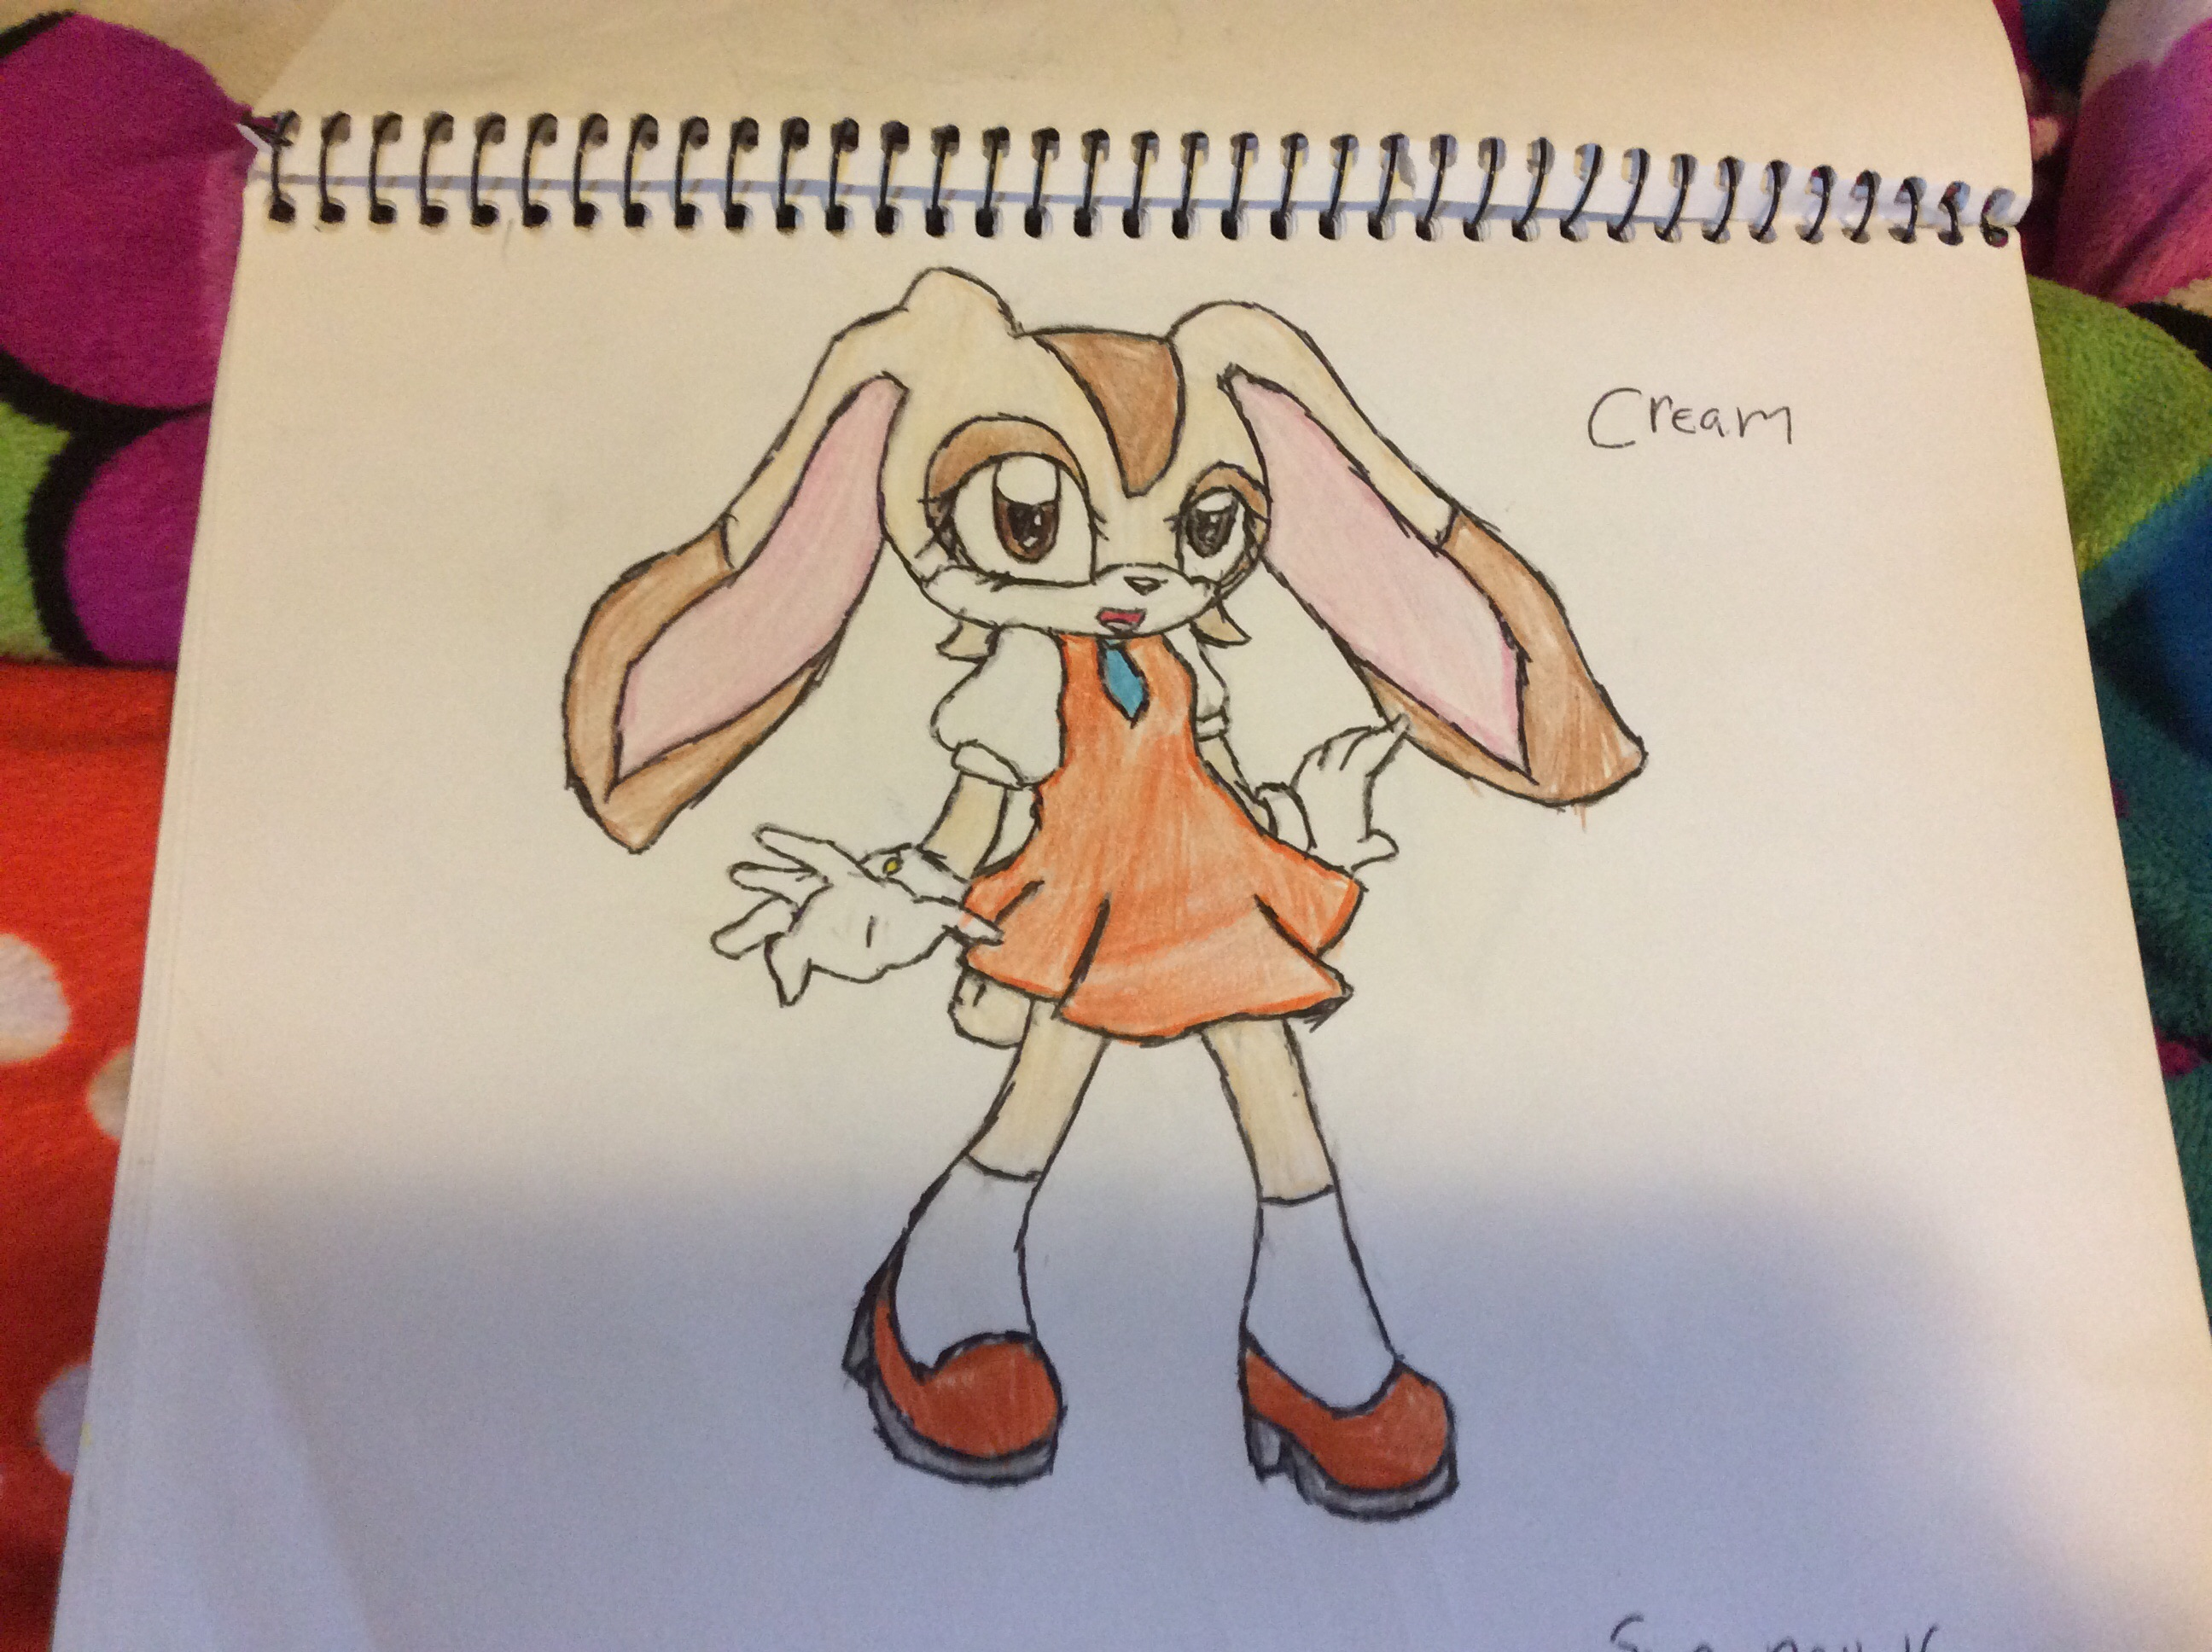 Cream the rabbit